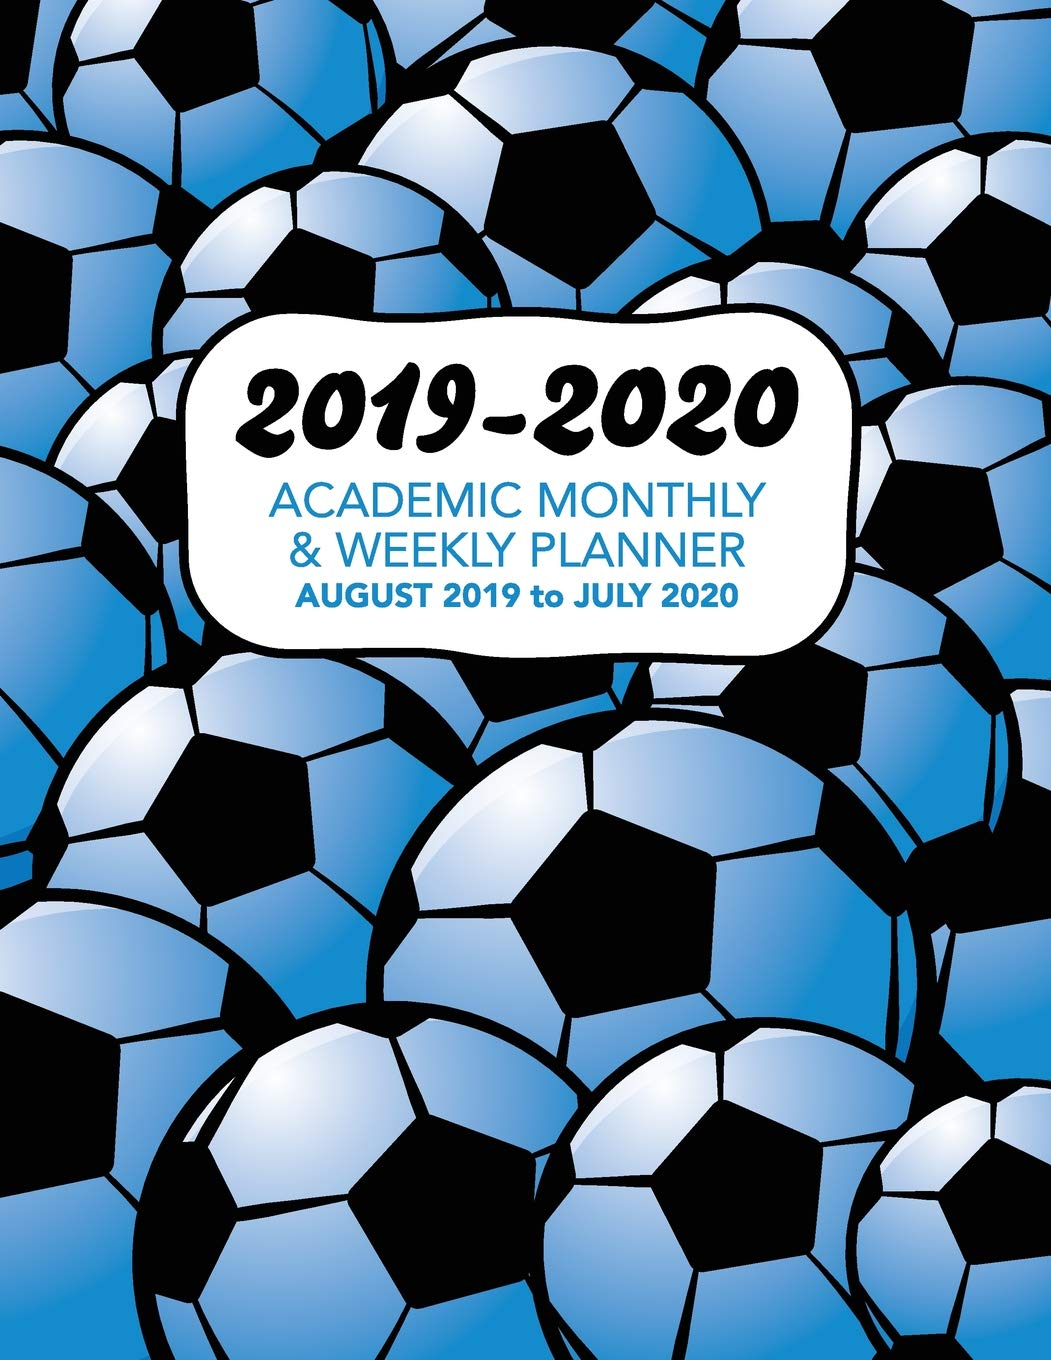 Download 2019 - 2020 Academic Monthly & Weekly Planner - August 2019 To July 2020: Blue Shaded American Soccer Pattern - Organizer,... 